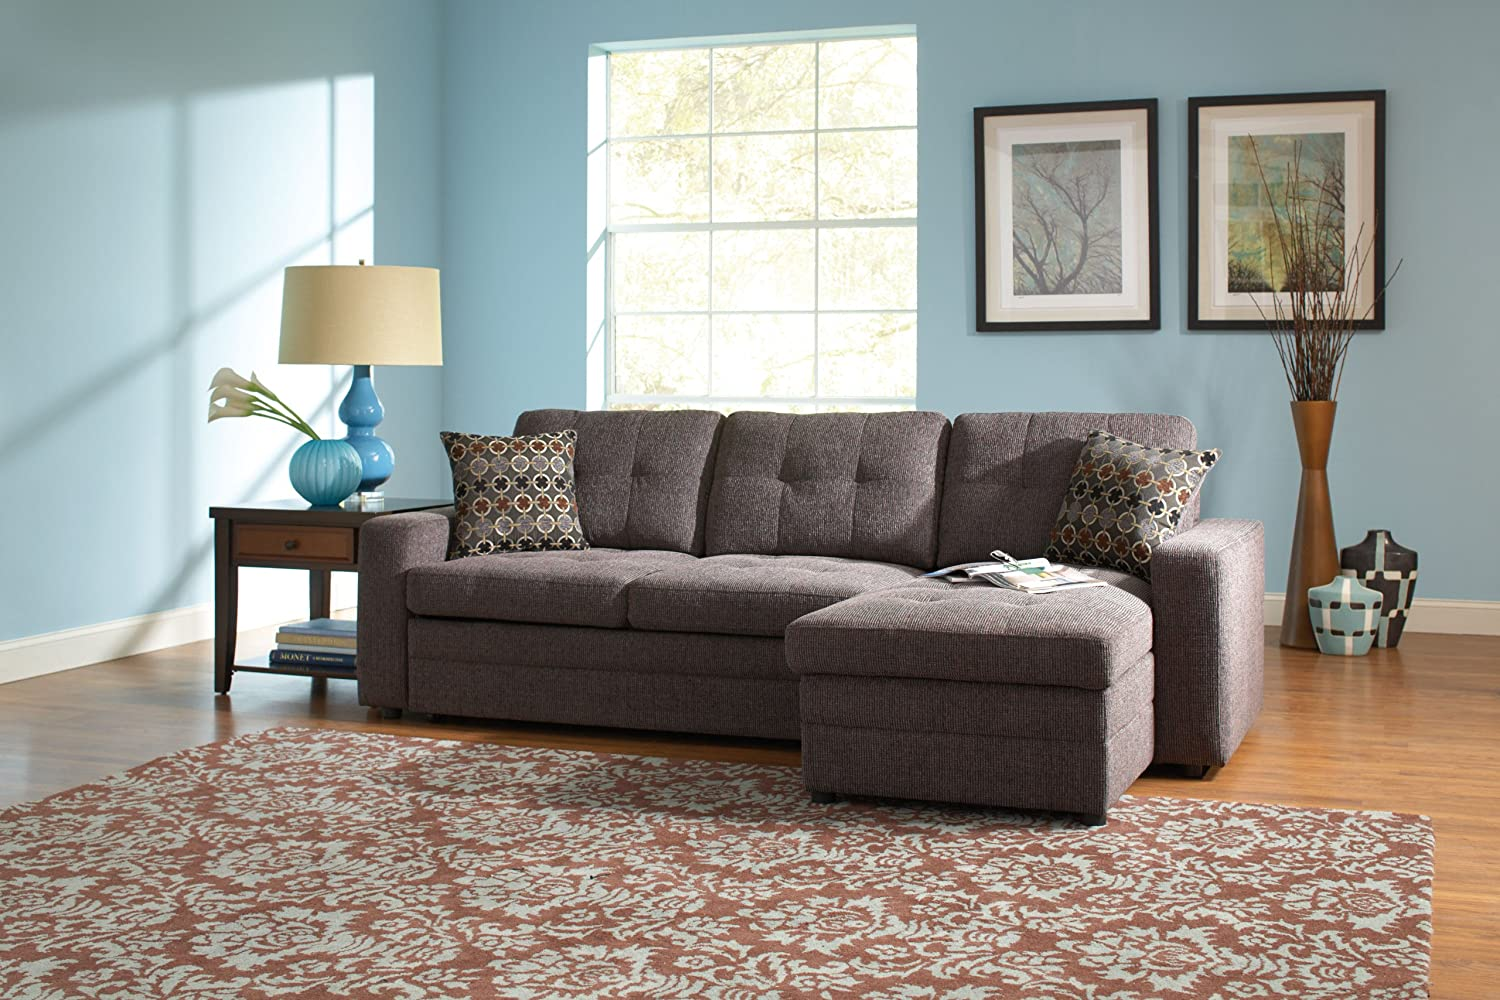 Amazon Com Gus 501677 98 Sectional Sofa With Pull Out Bed Chaise